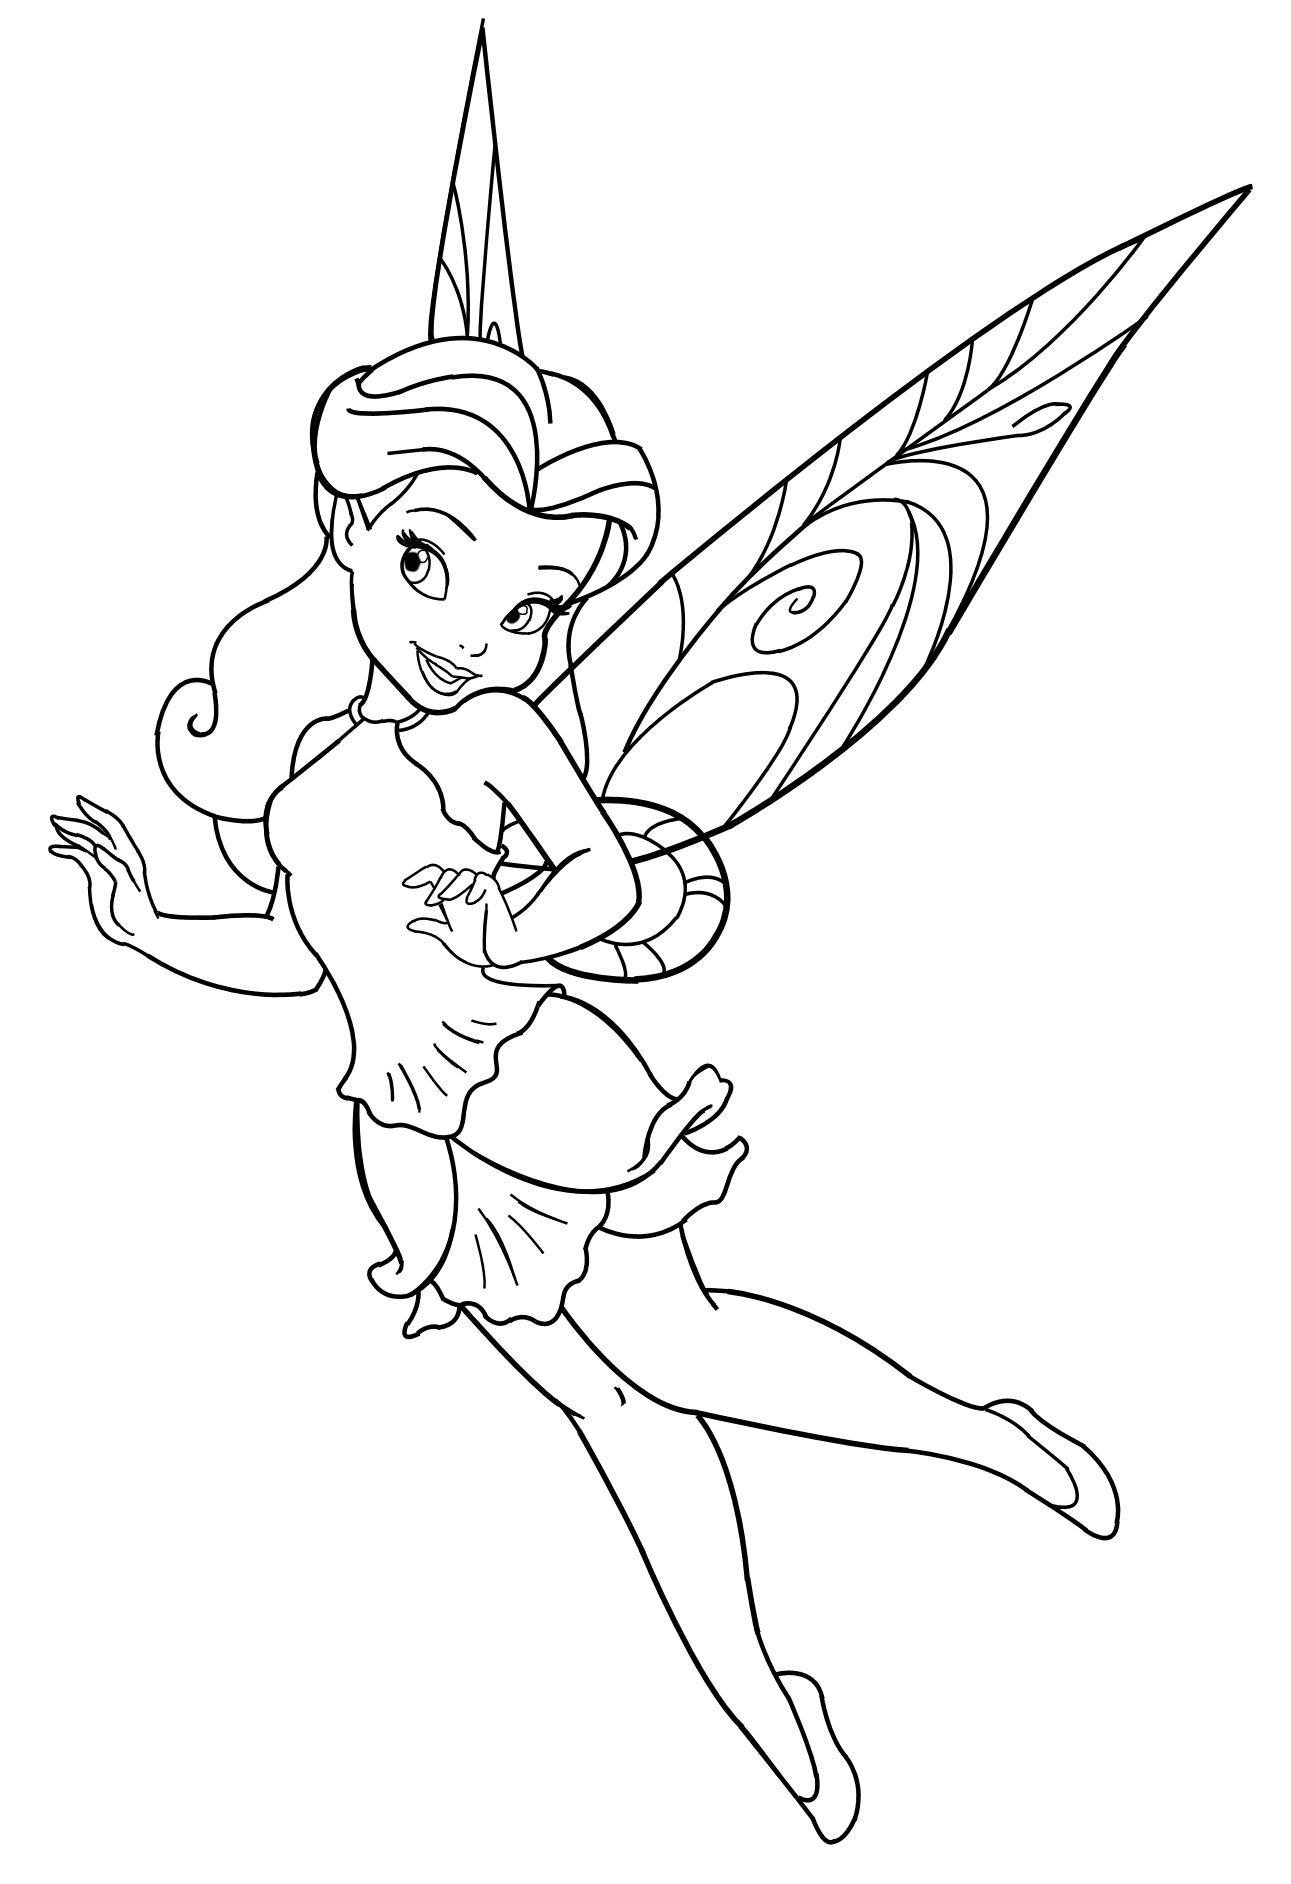 Disney up coloring sheets - Colouring Page